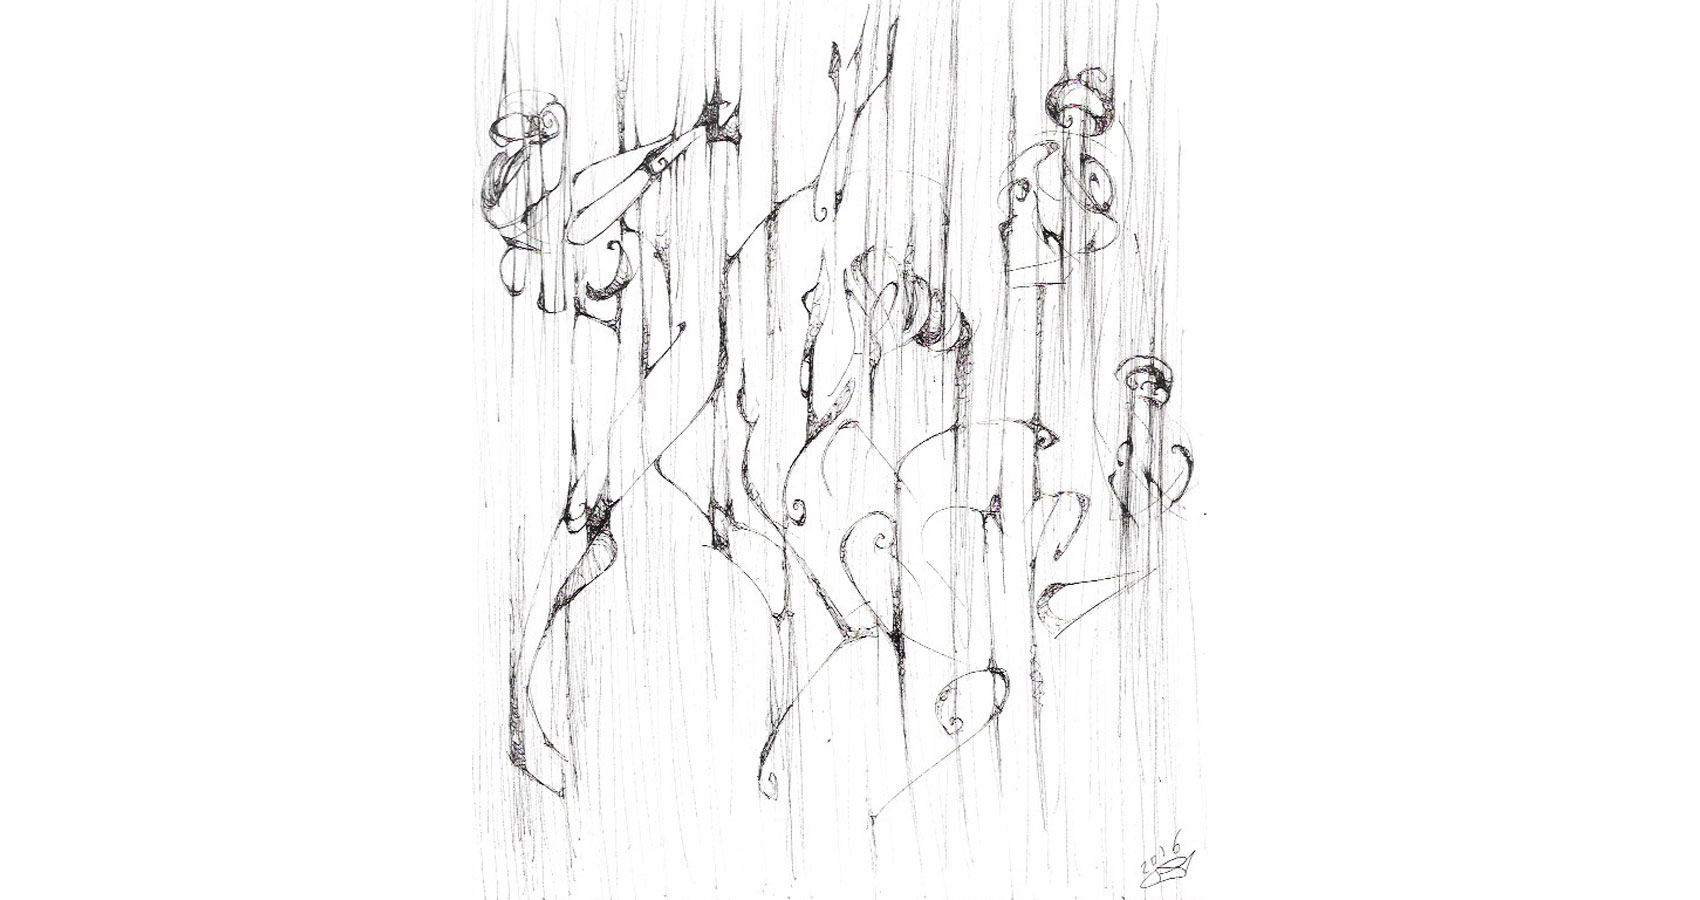 Chaos in the Rains of Time by Robyn MacKinnon at Spillwords.com